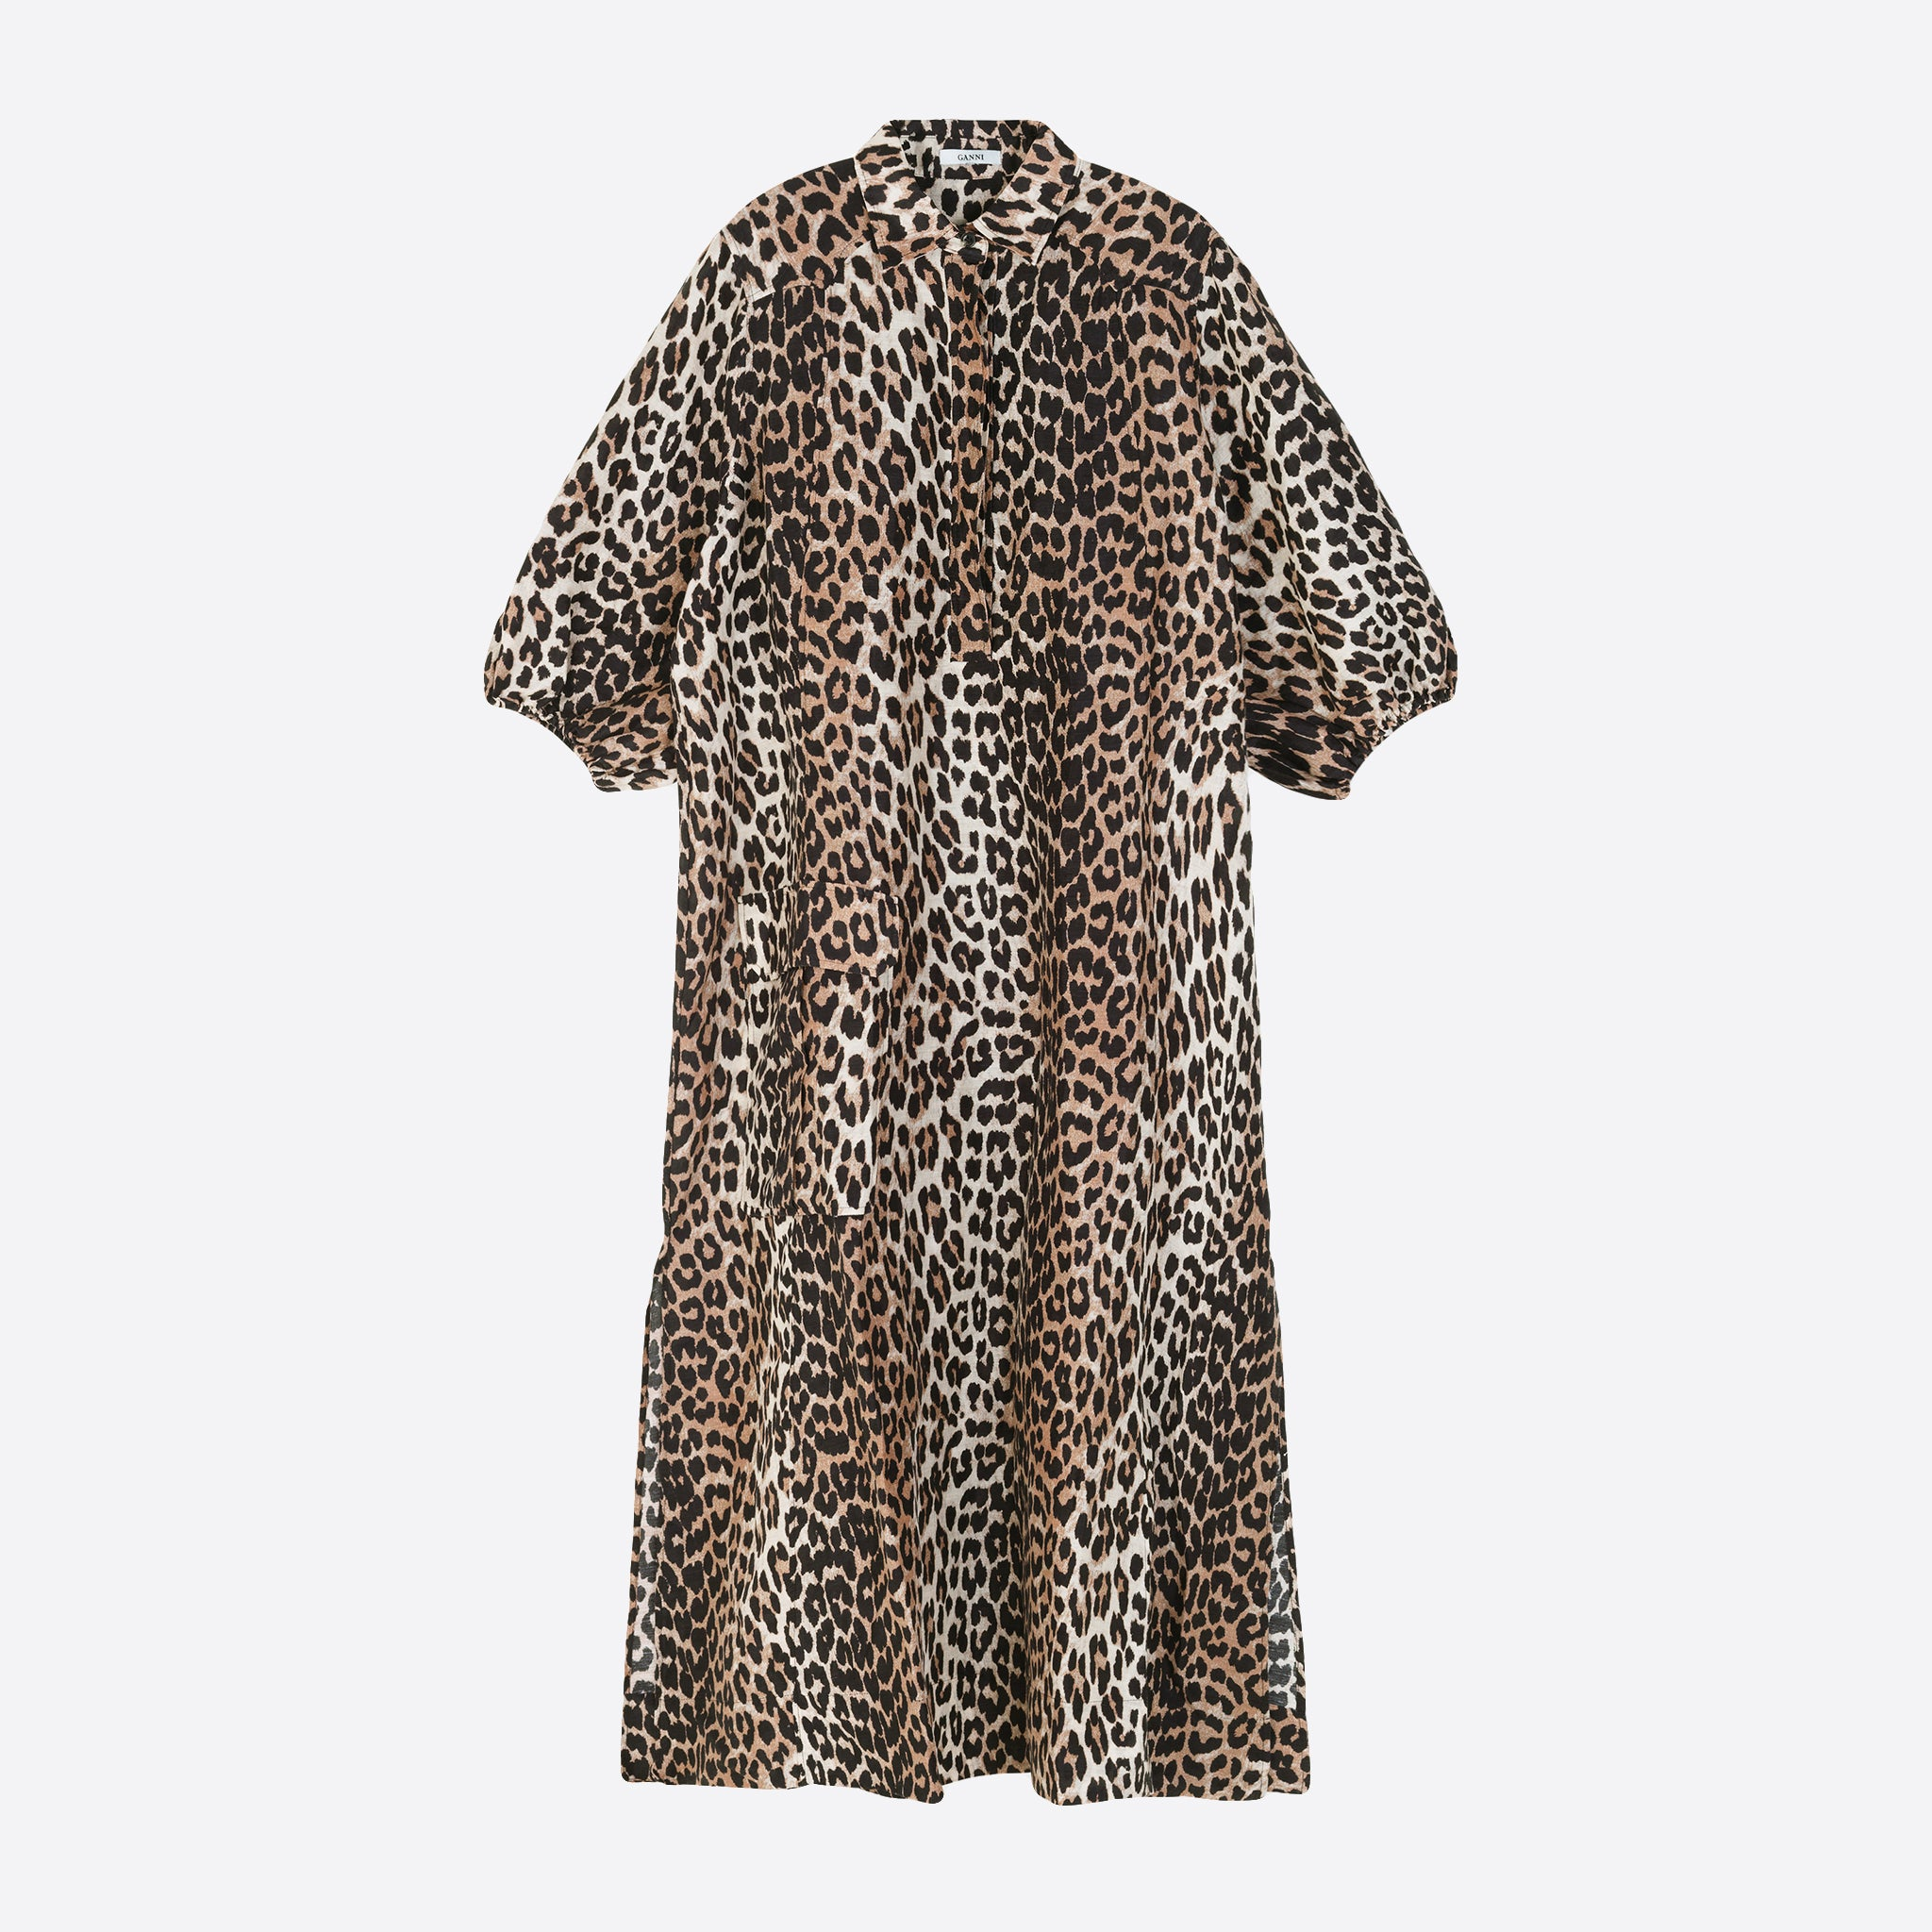 Ganni Oversized Shirt Dress in Leopard